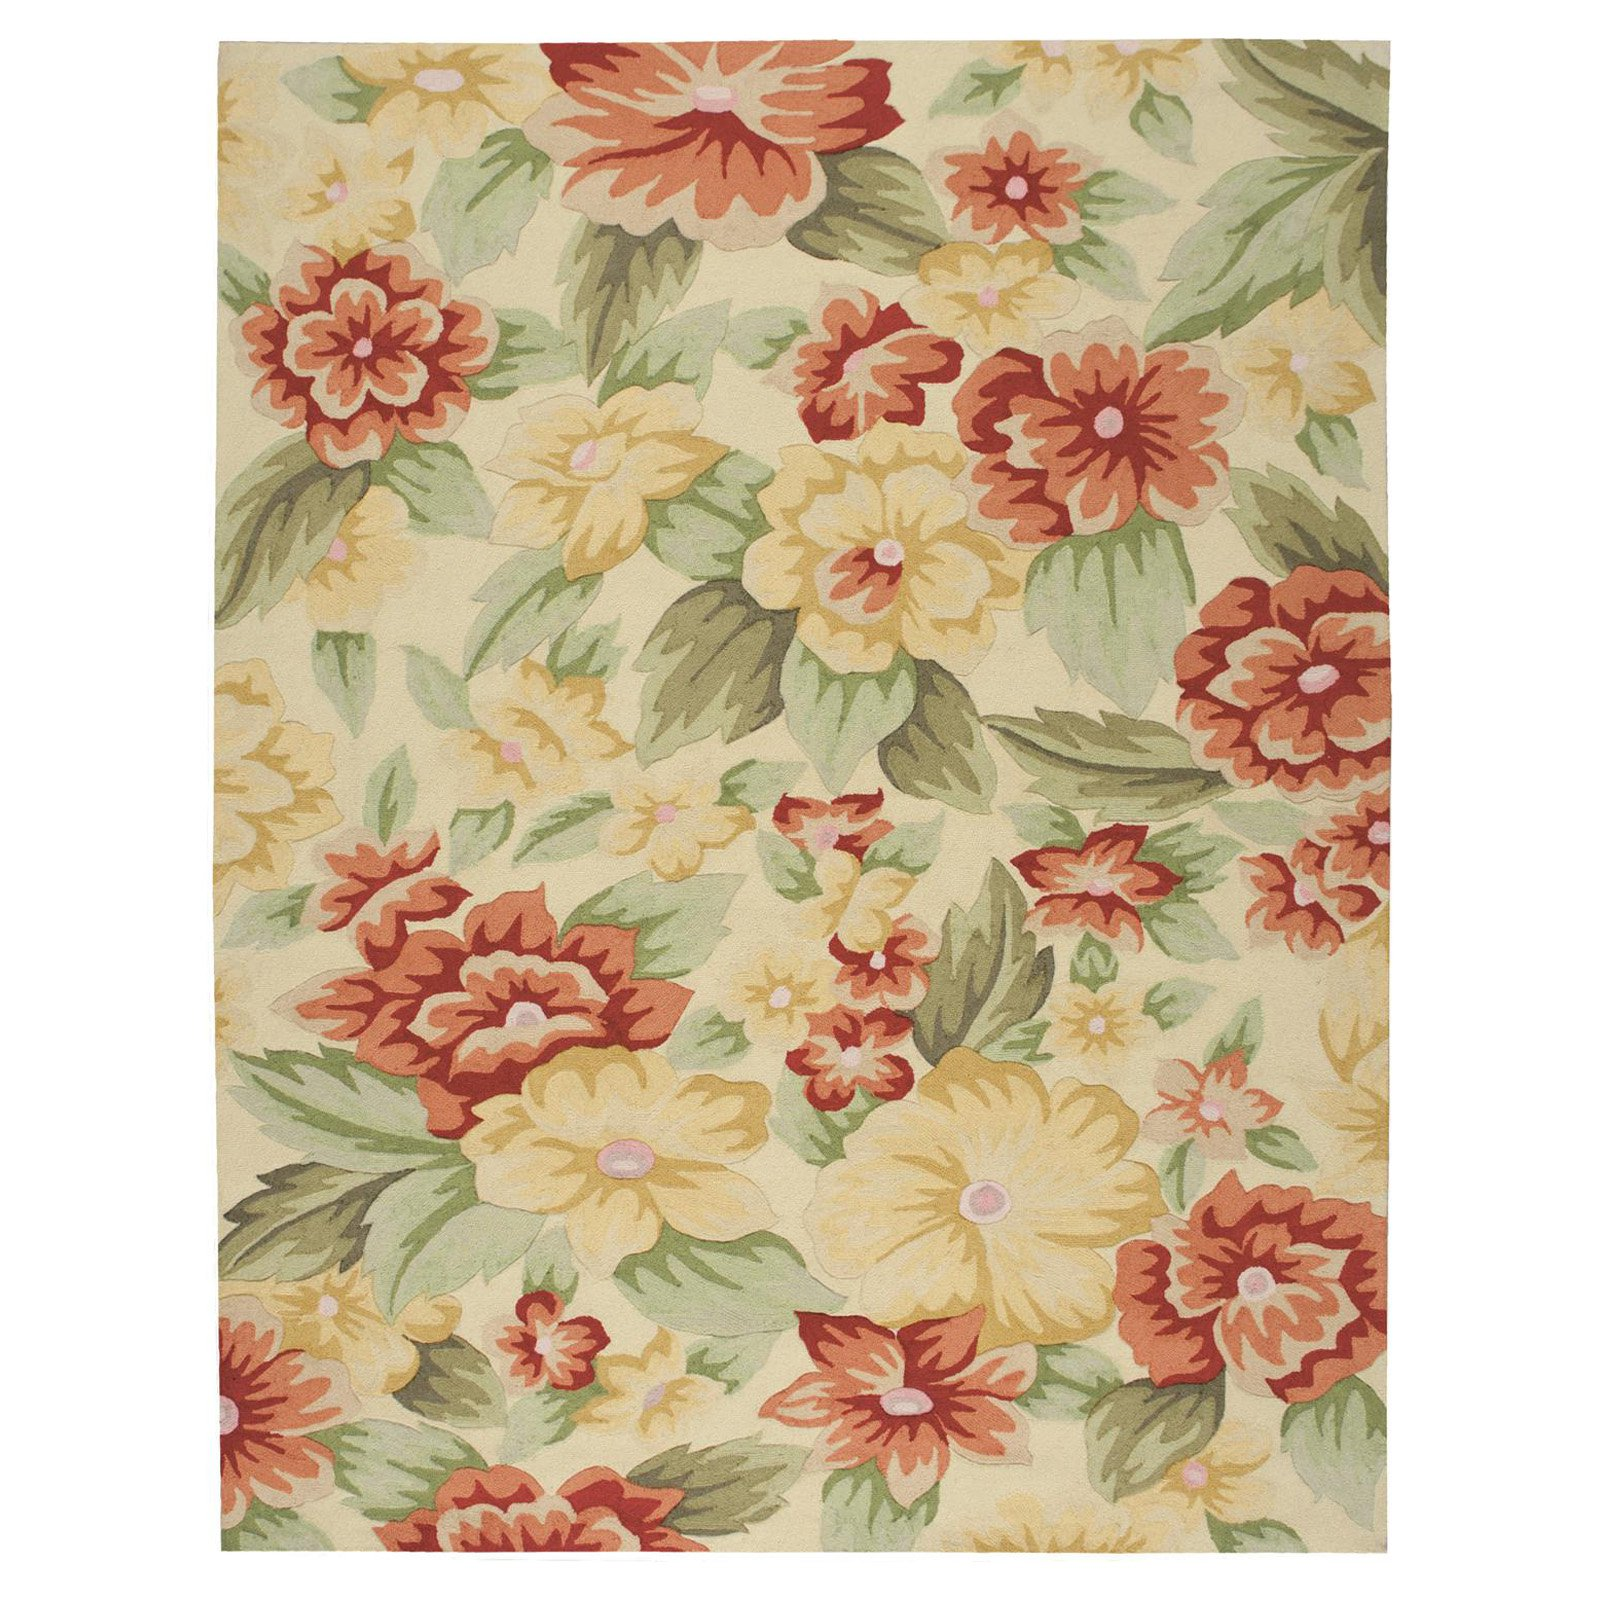 Nourison Fantasy Floral Images Meadowlands Area Rug